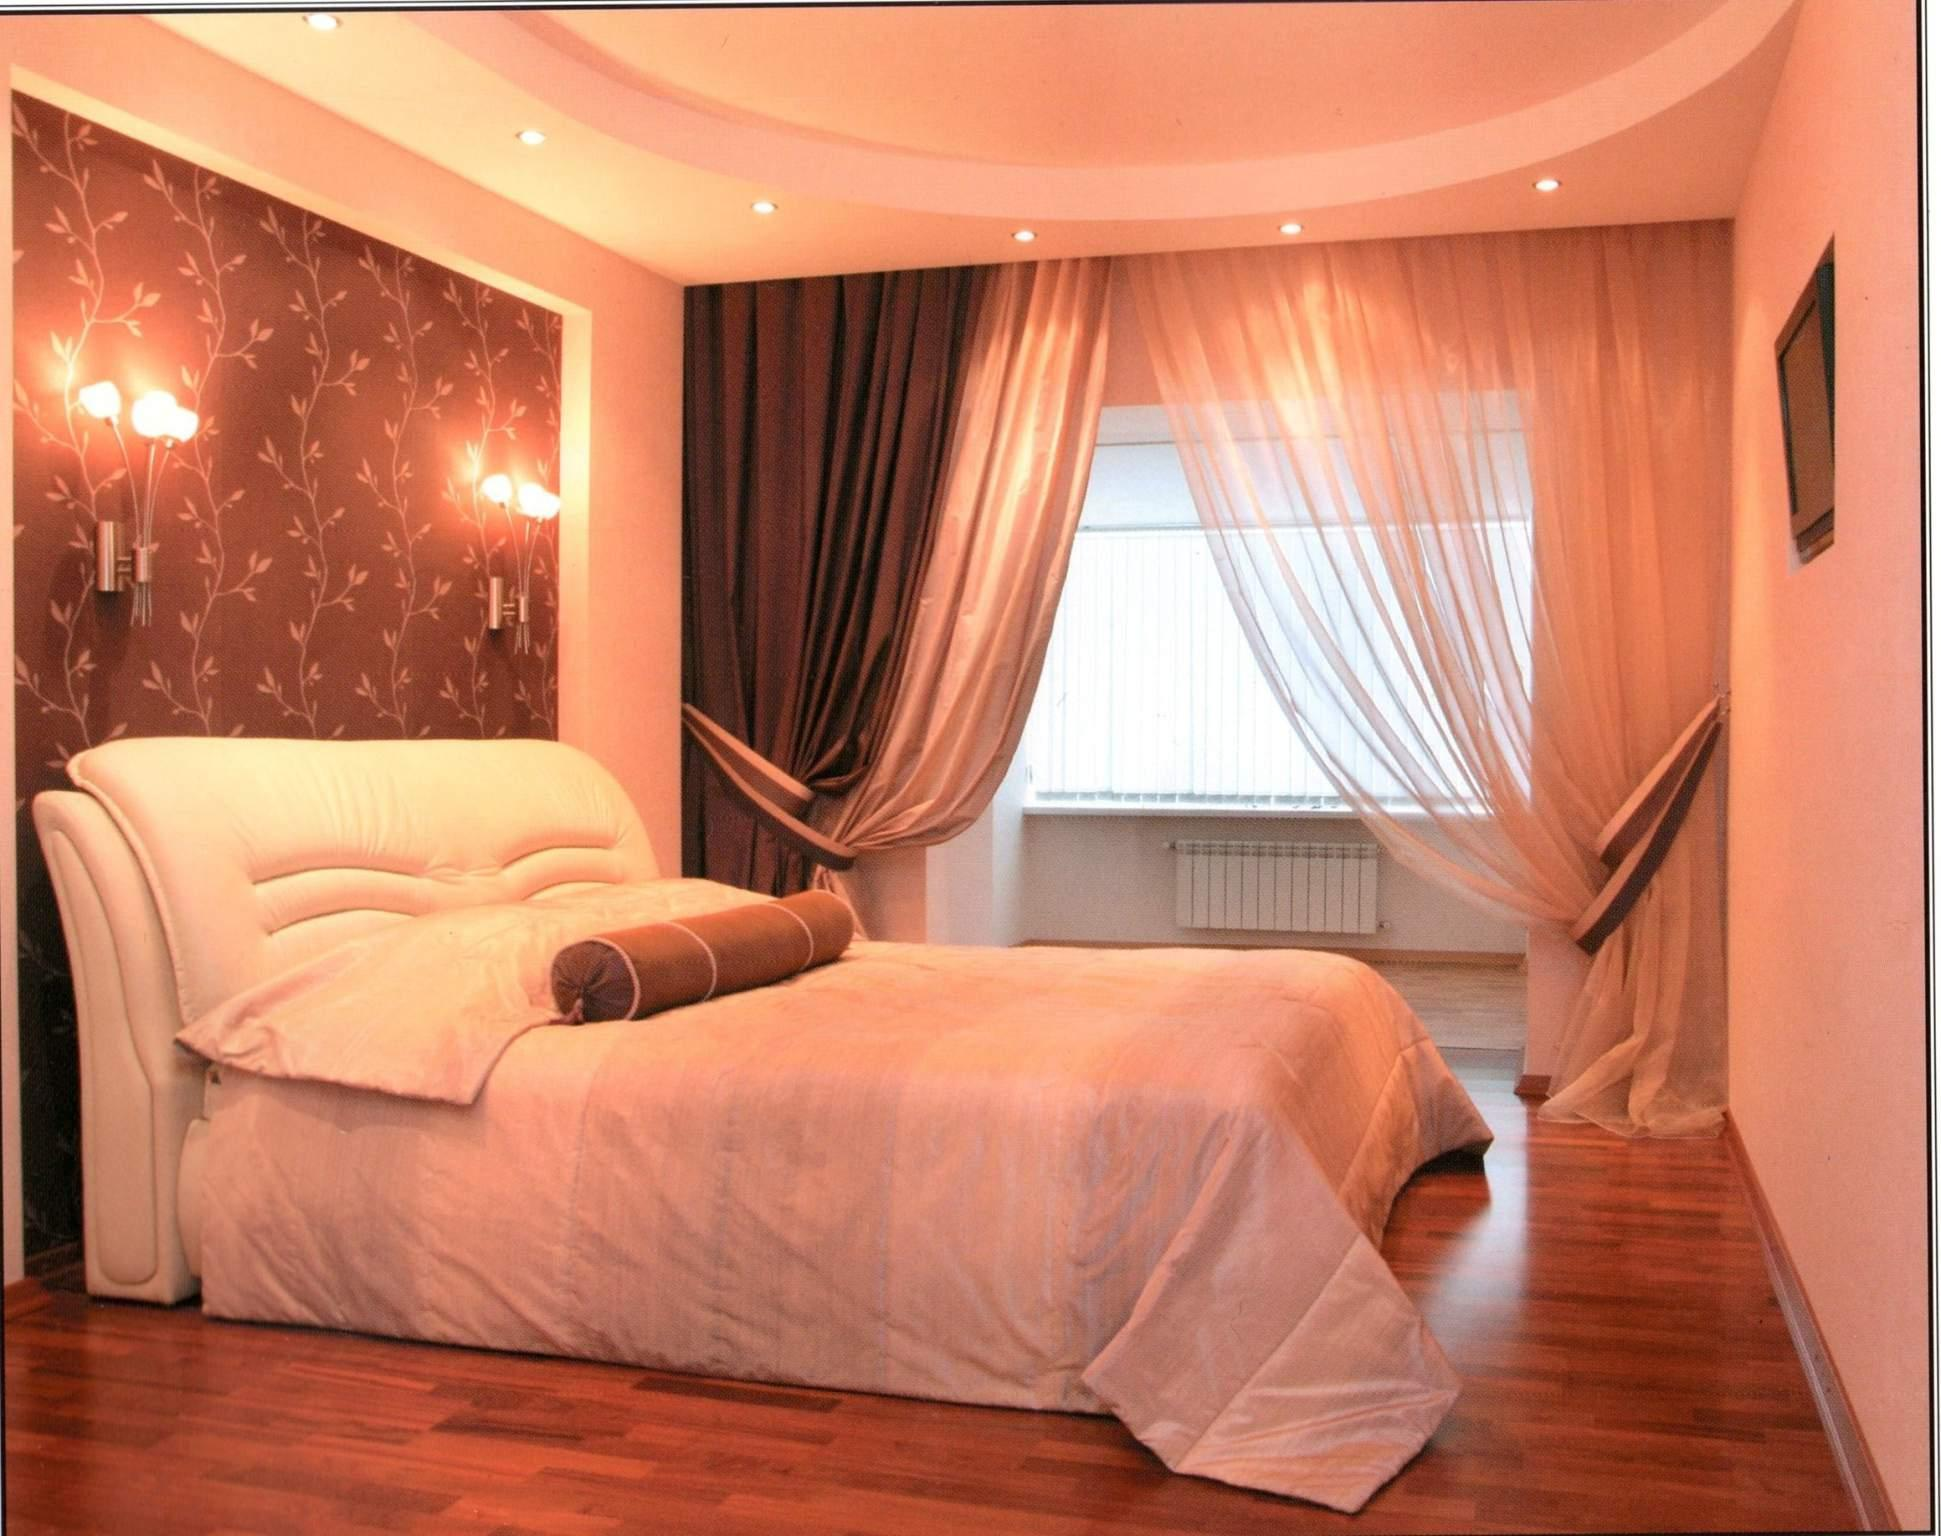 Curtains in the small bedroom - home decoration.